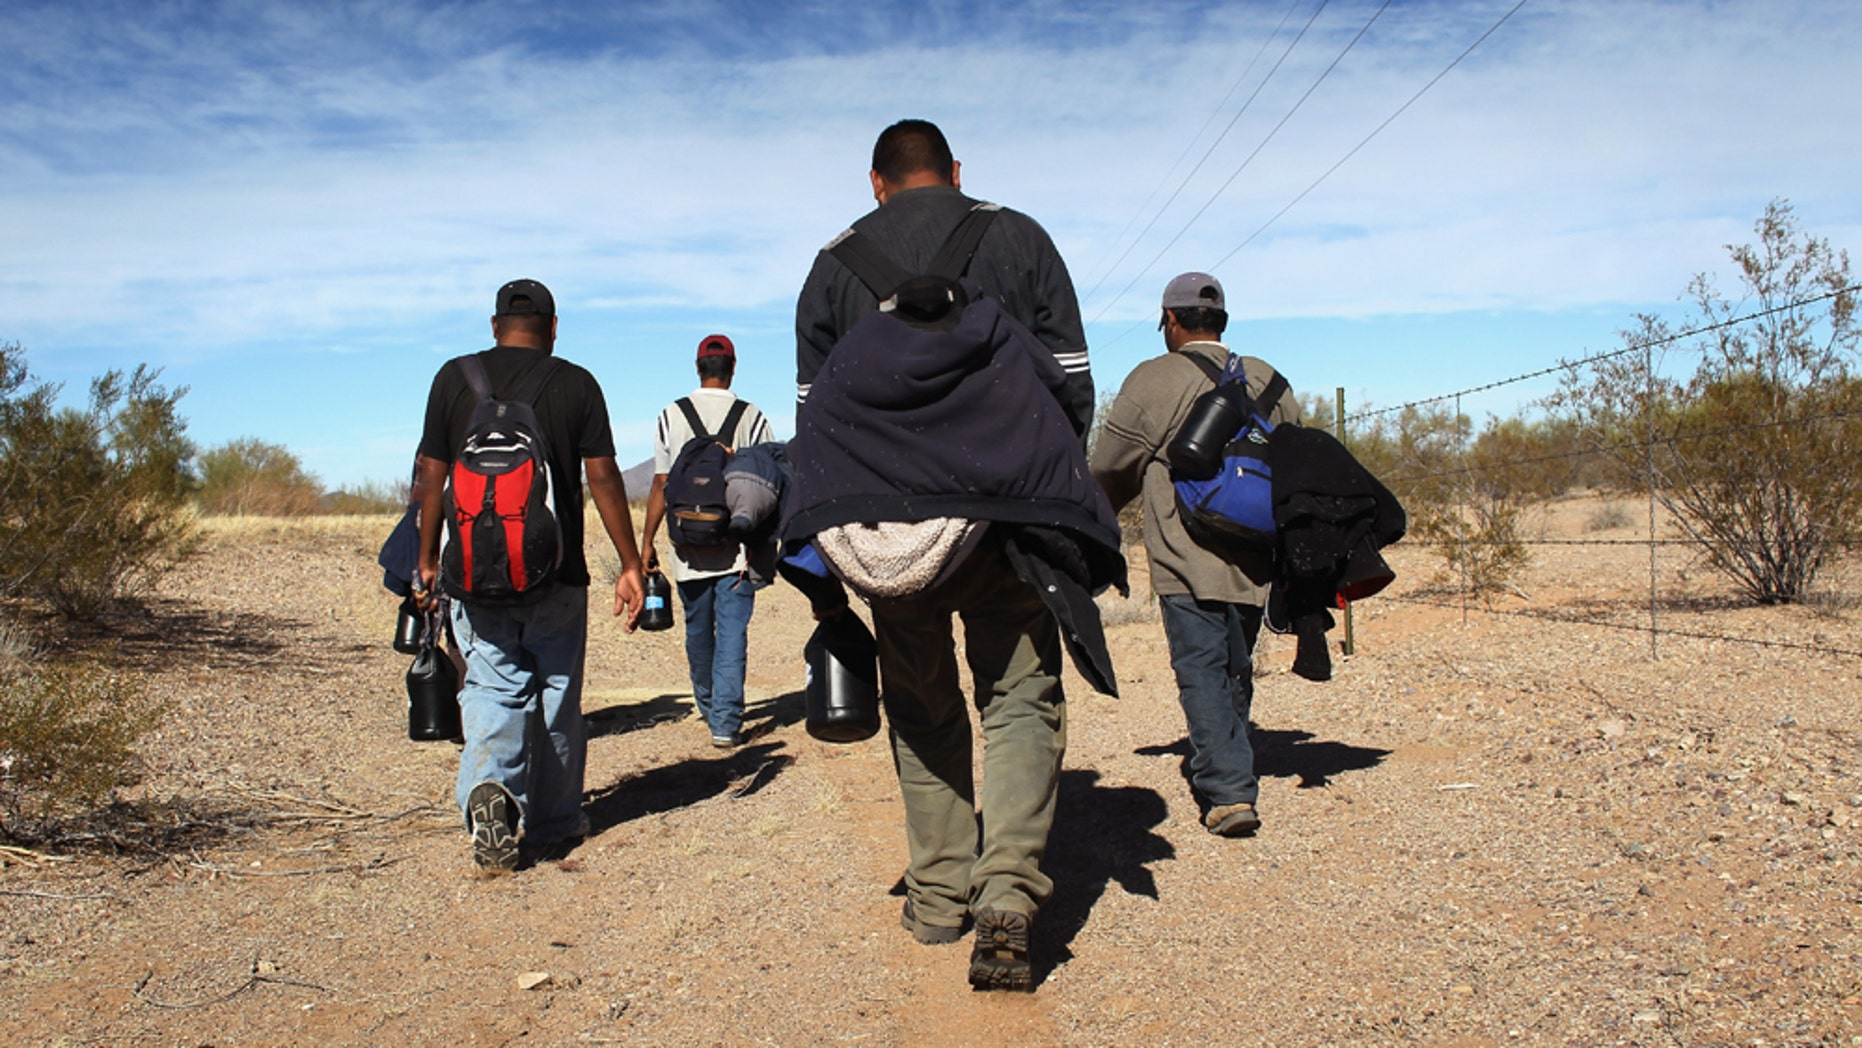 Migrants walk through the Sonoran Desert after illegally crossing the U.S.-Mexico border on January 19, 2011. They had wandered the desert lost for a week. (Photo by John Moore/Getty Images)